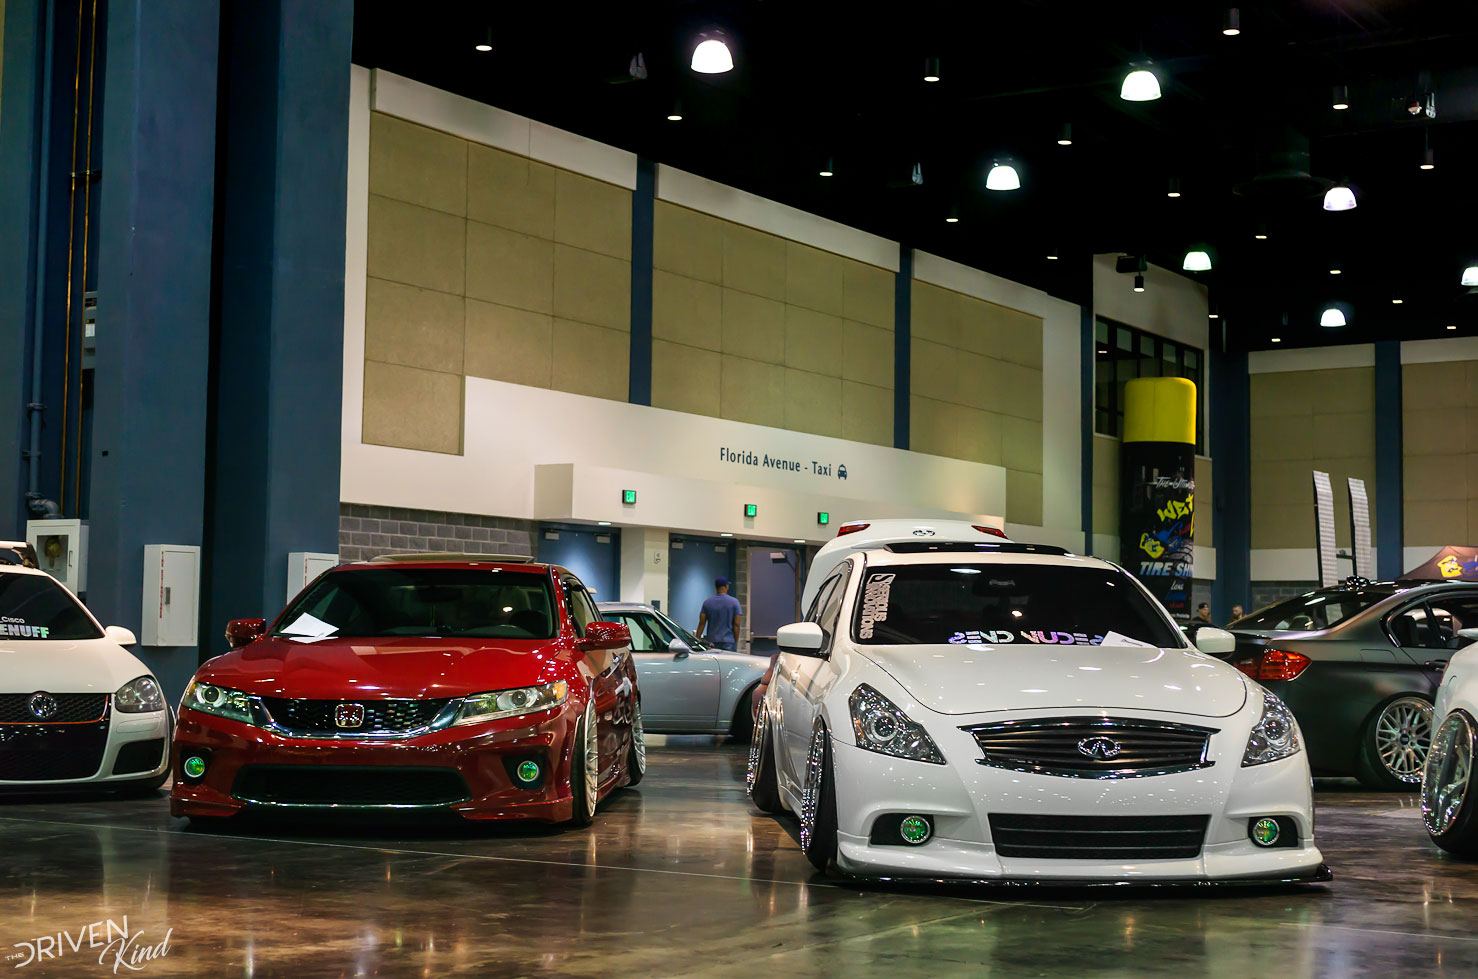 Infiniti STANCENATION FLORIDA PALM BEACH CONVENTION CENTER 2017 Pt. 2 The Driven Kind Coverage